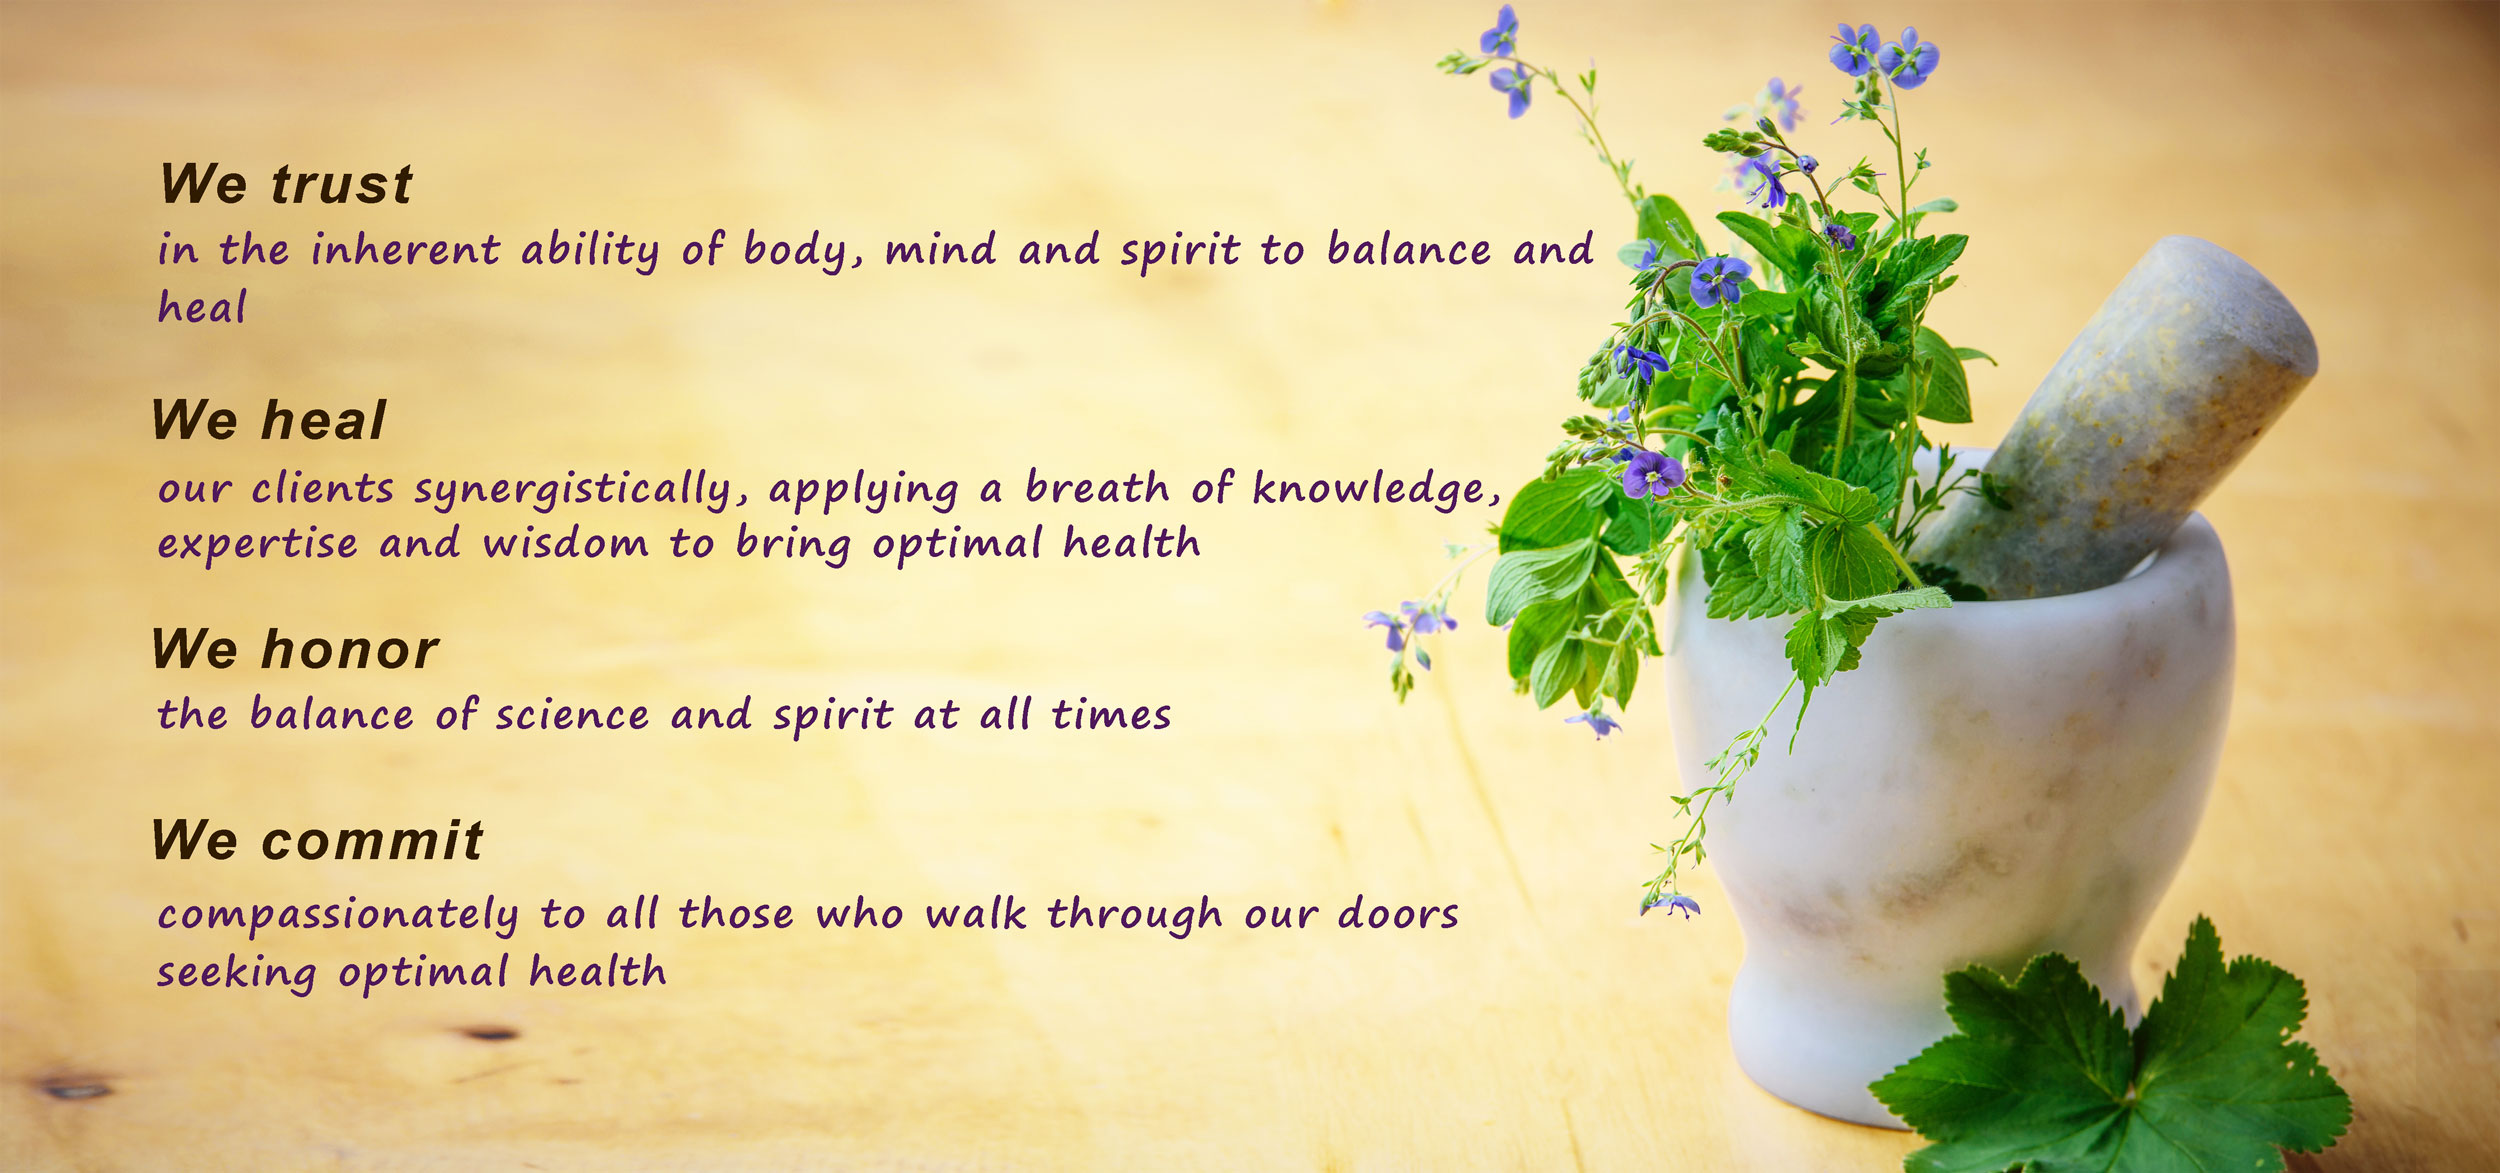 Your trust at Naturopathic Clinic